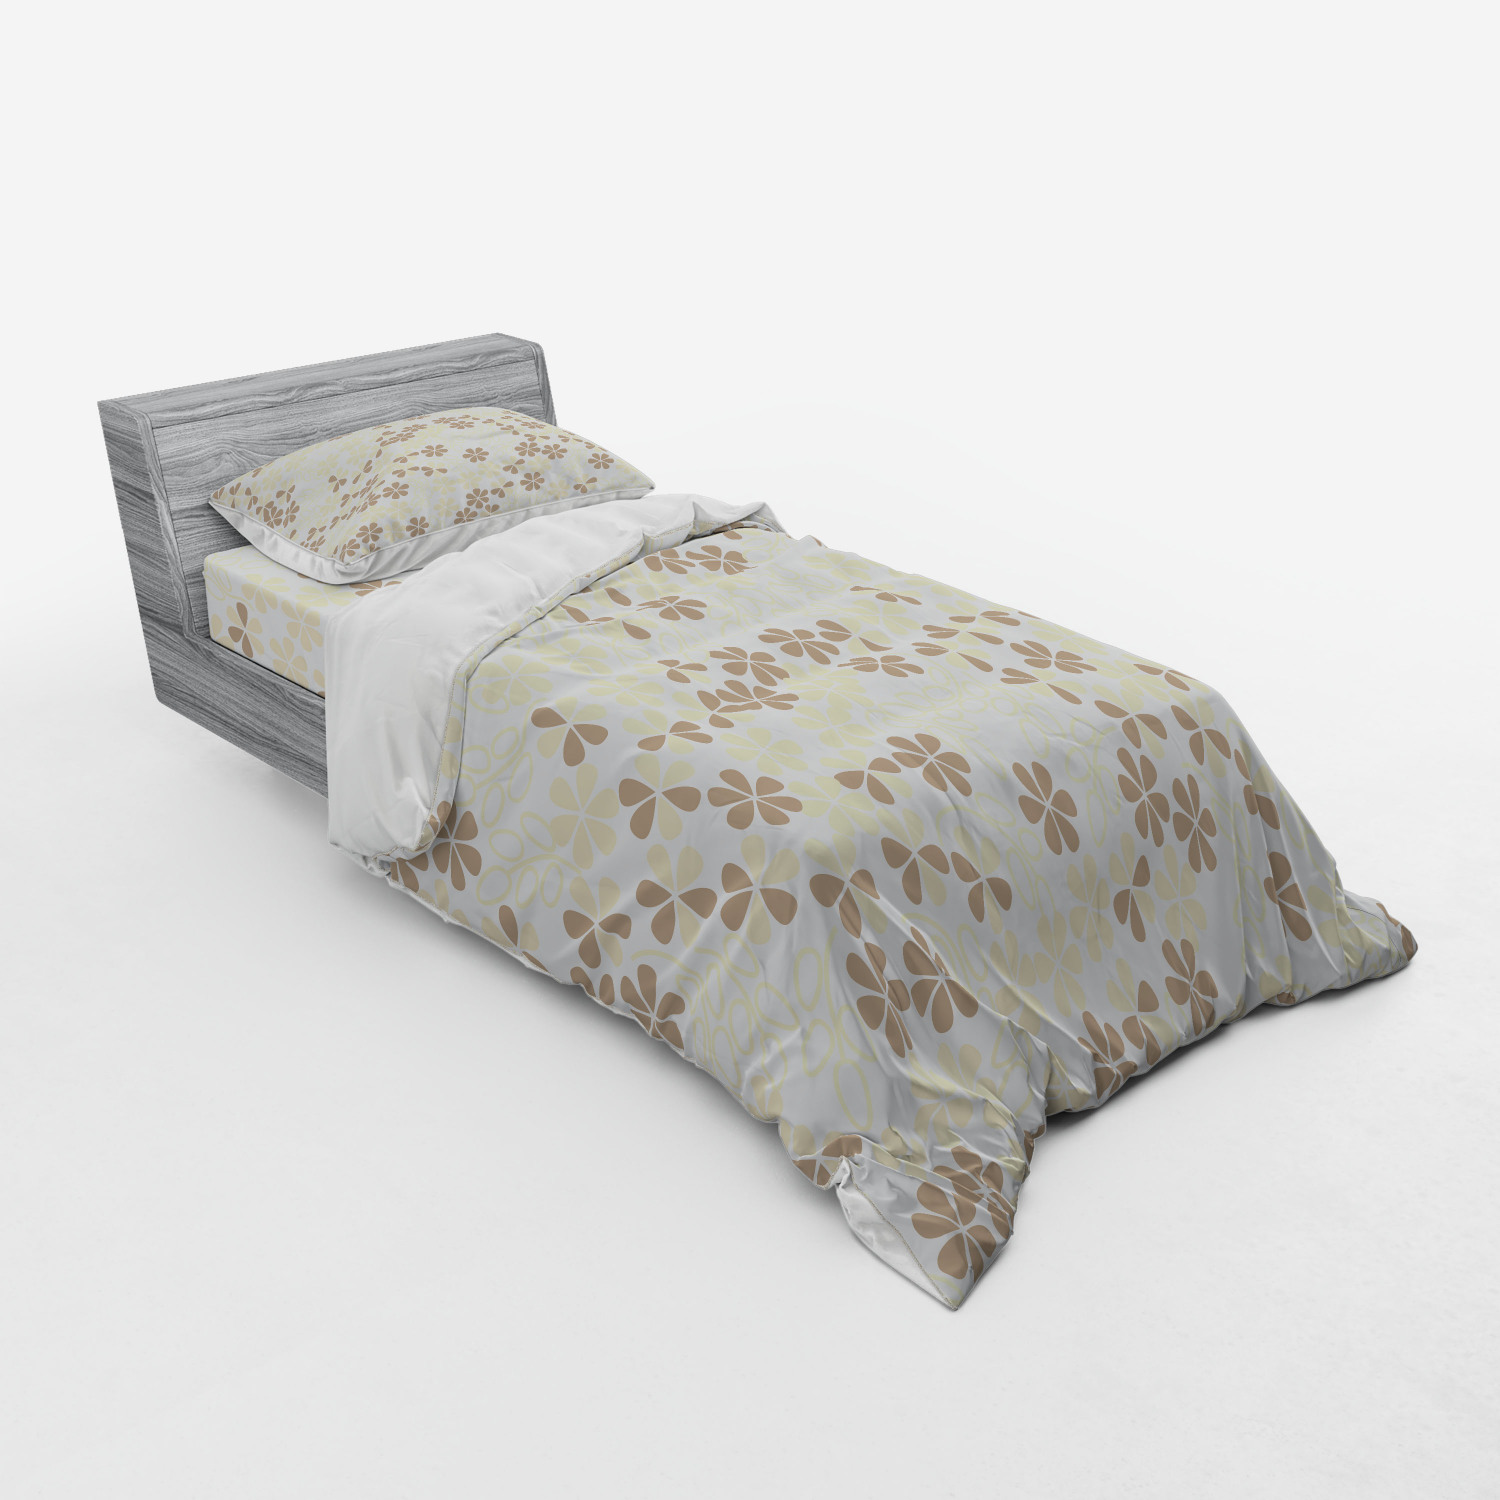 thumbnail 85 - Ambesonne Summer Bedding Set Duvet Cover Sham Fitted Sheet in 3 Sizes